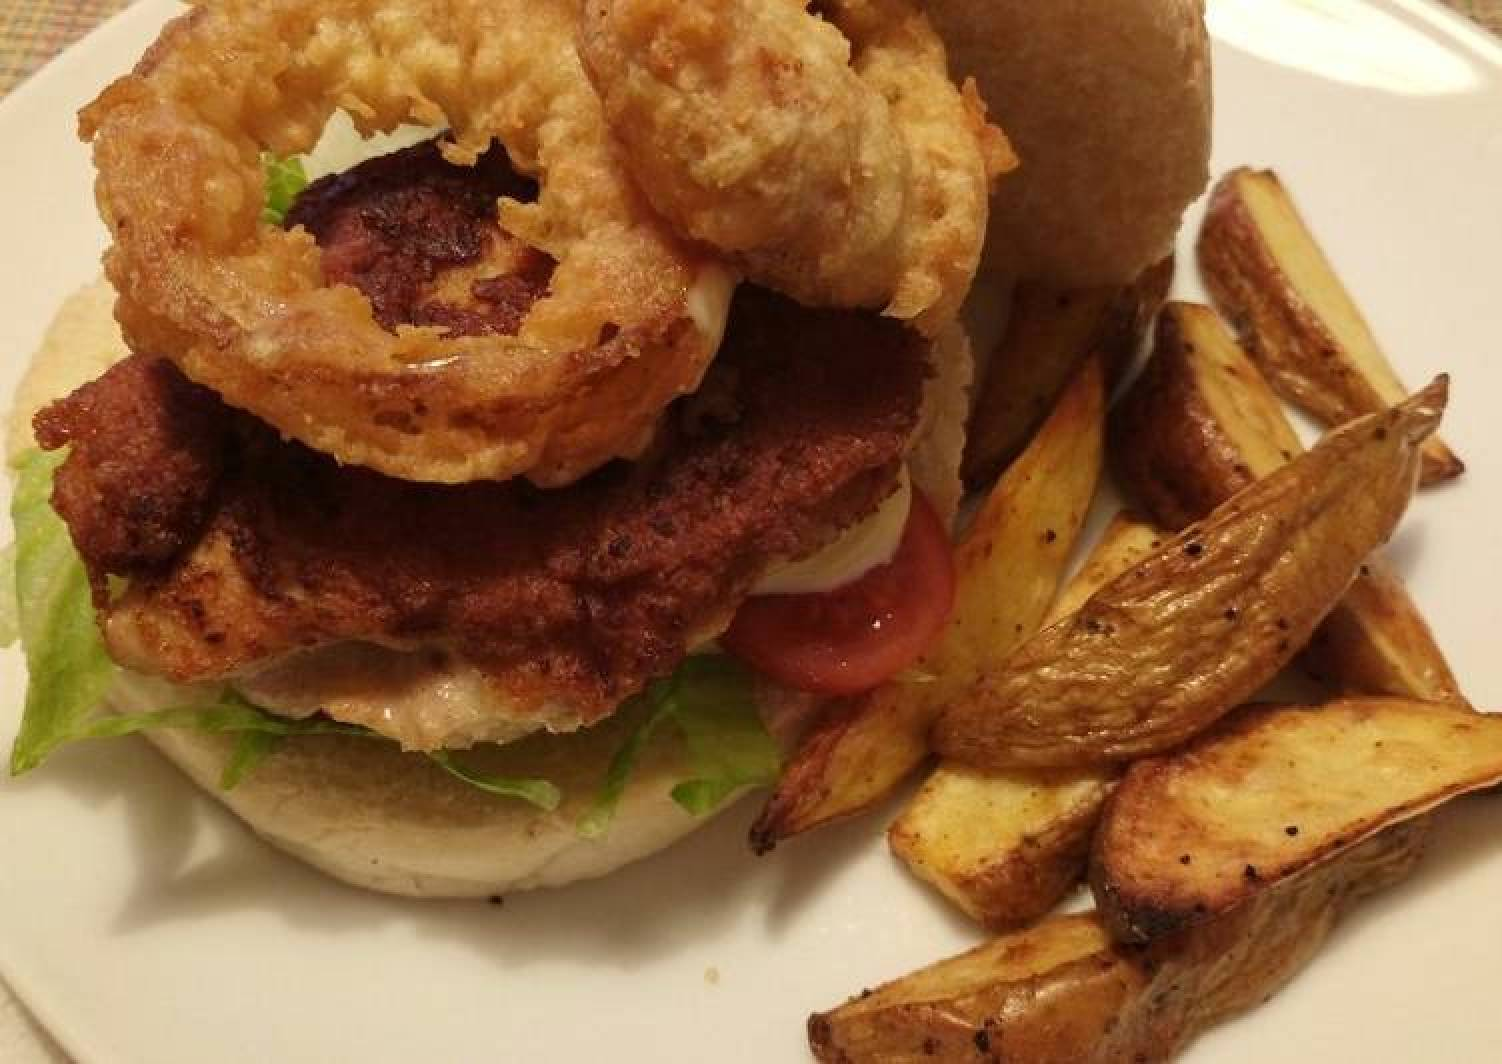 Chicken burger with beer battered onion & Cajun wedges